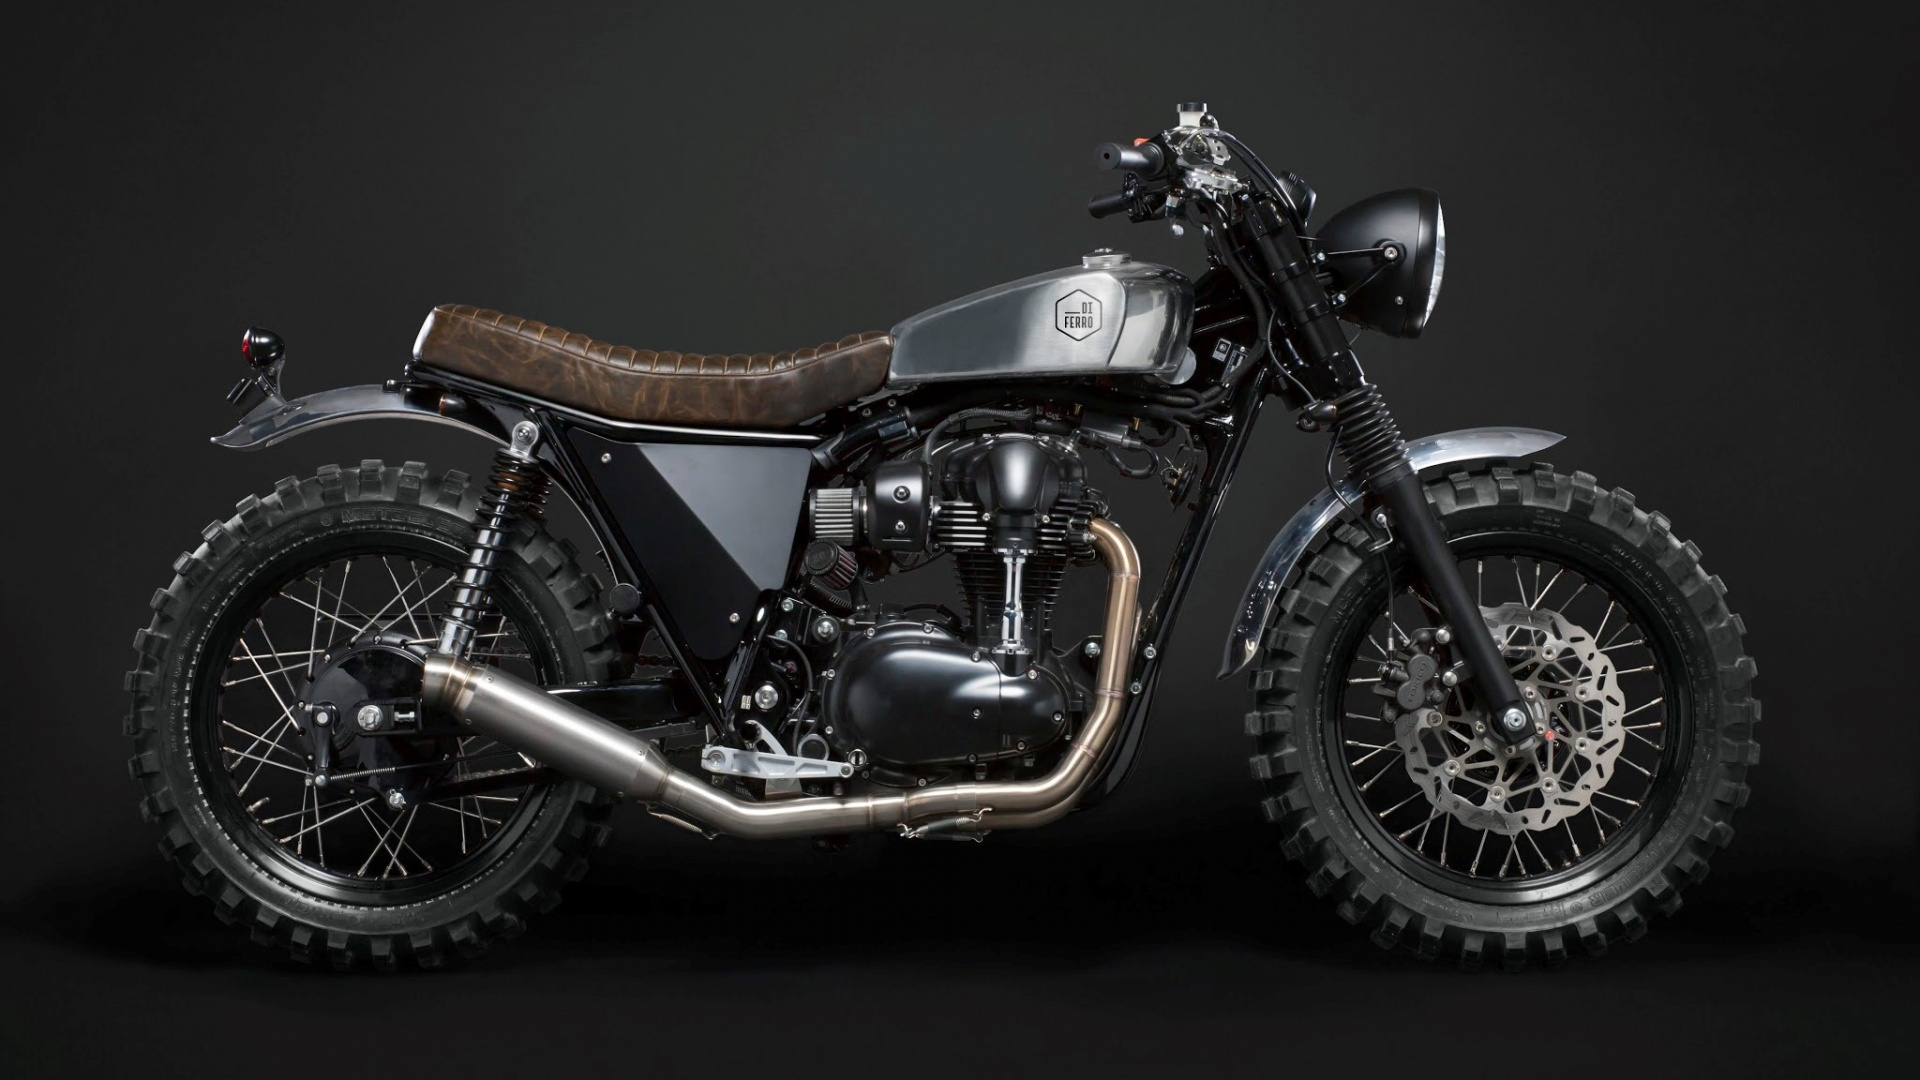 Kawasaki W800 Custom Scrambler Wallpapers